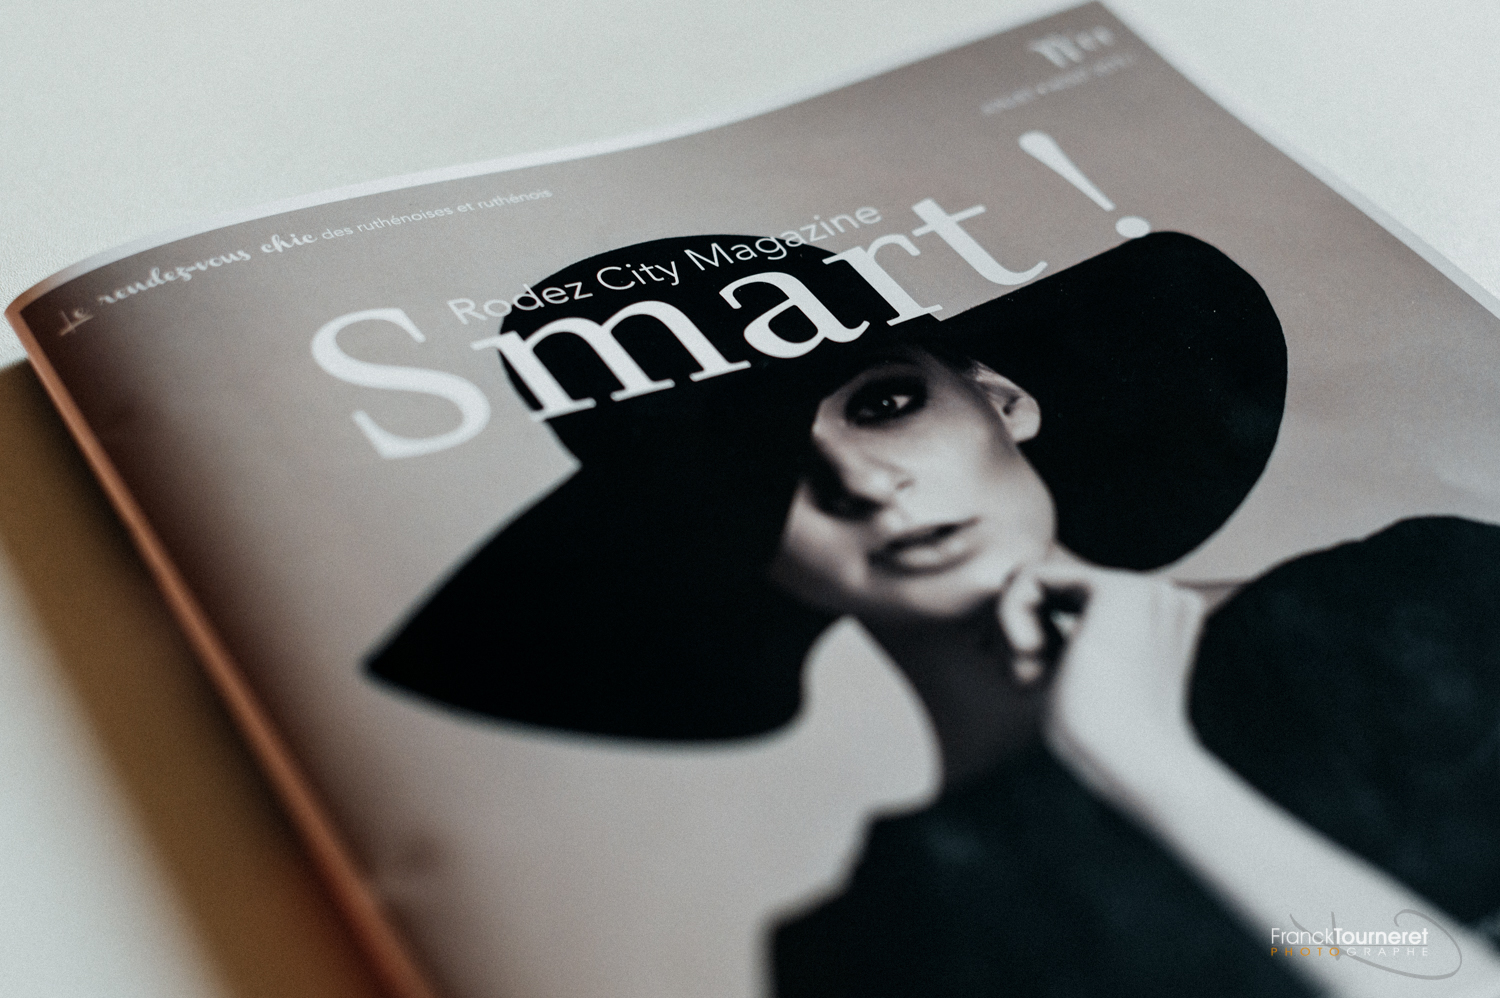 Smart ! Rodez City Magazine